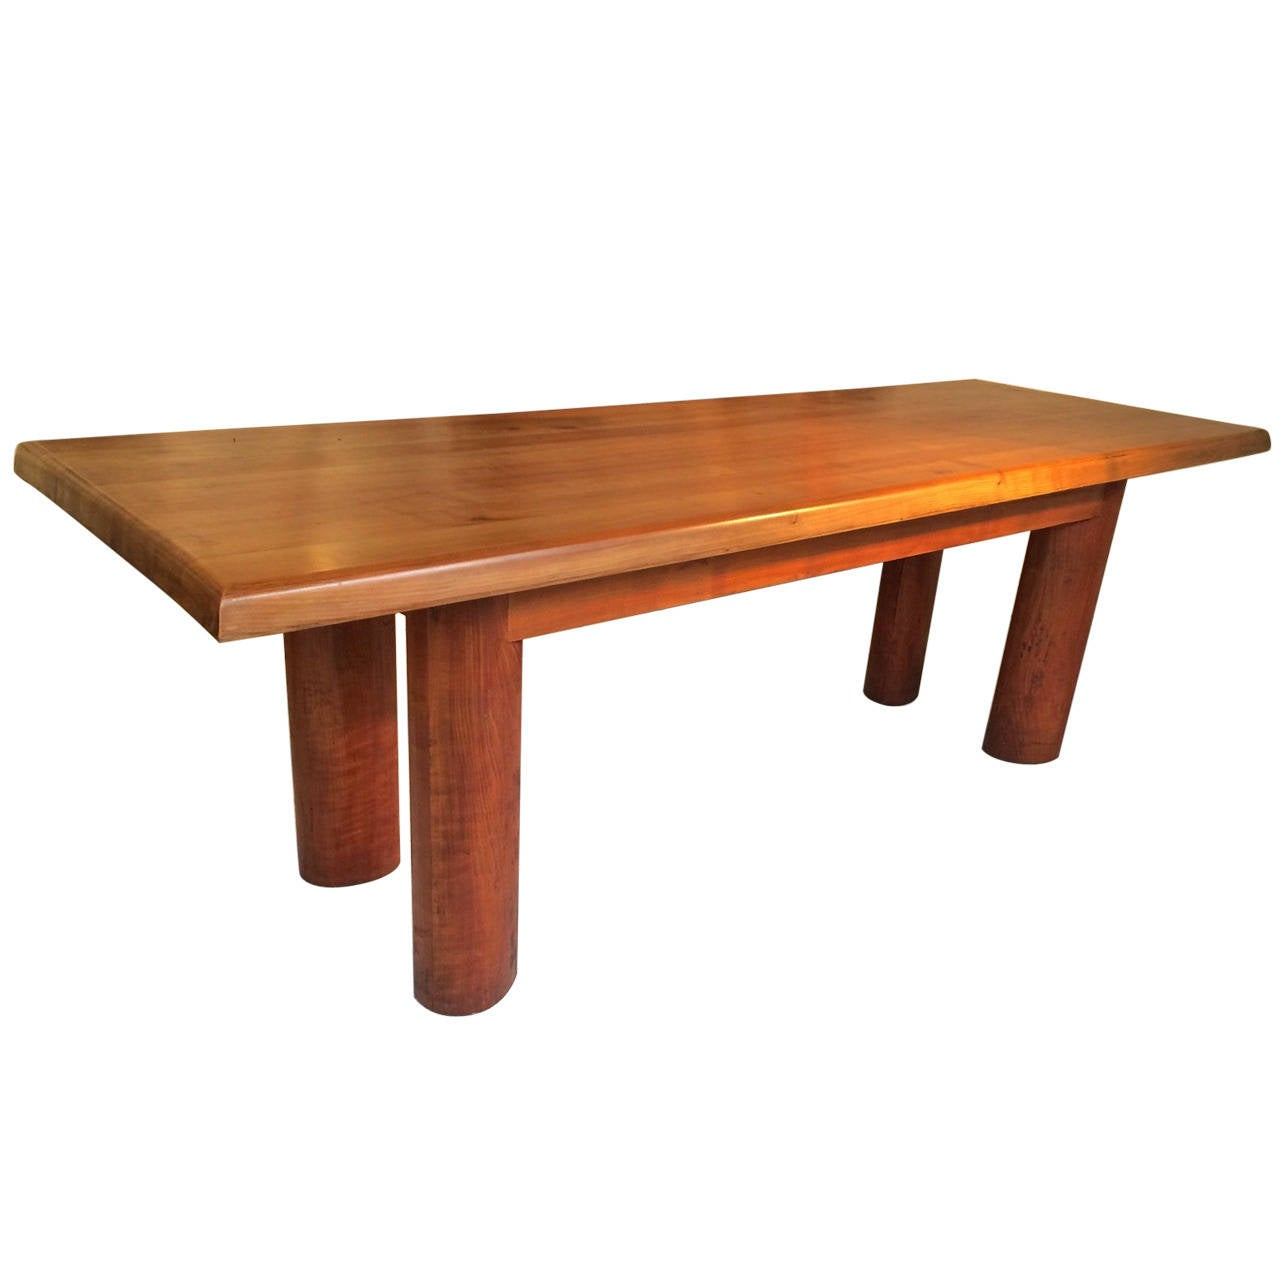 Timber furniture timber dining table heartwood dandenong for Long contemporary dining tables